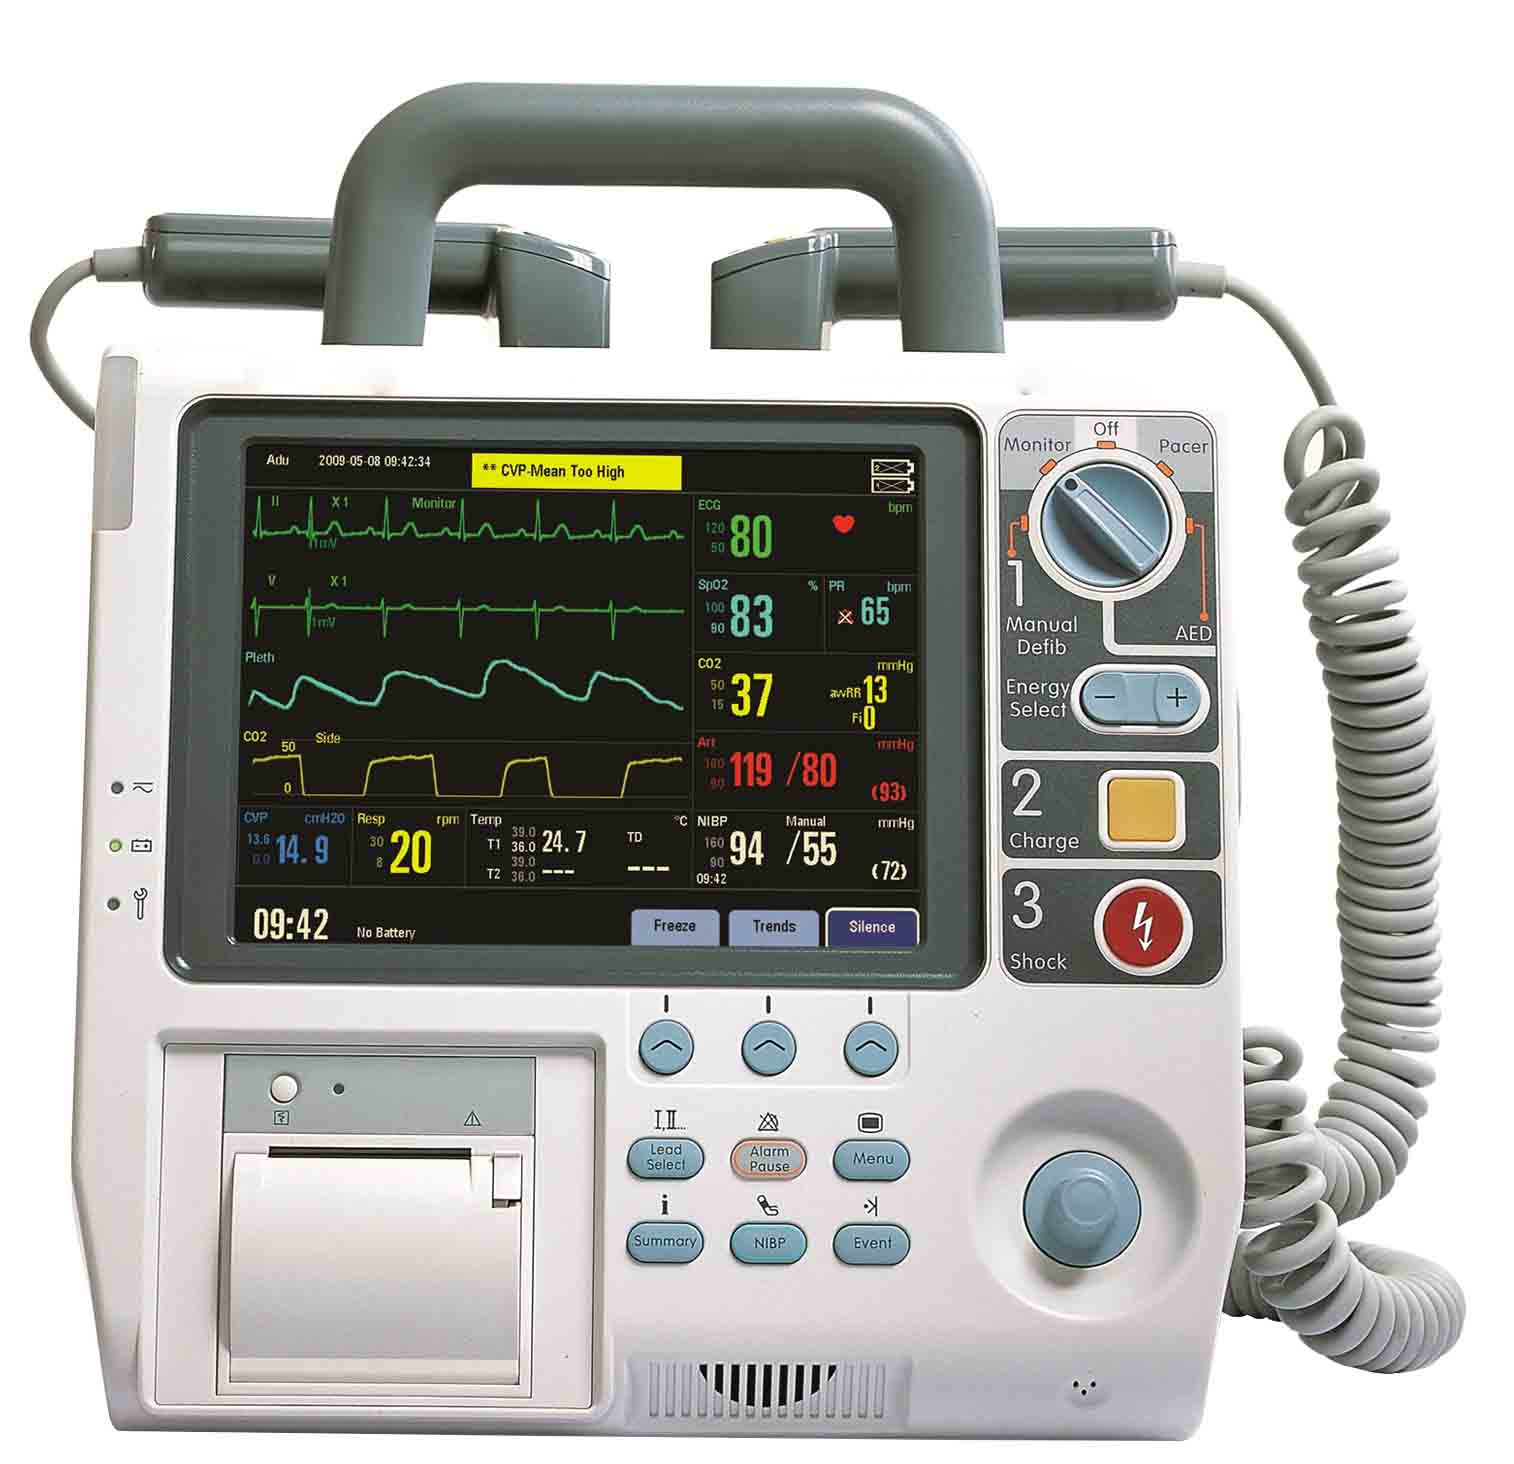 AED cable application for Defibrillator Paddle